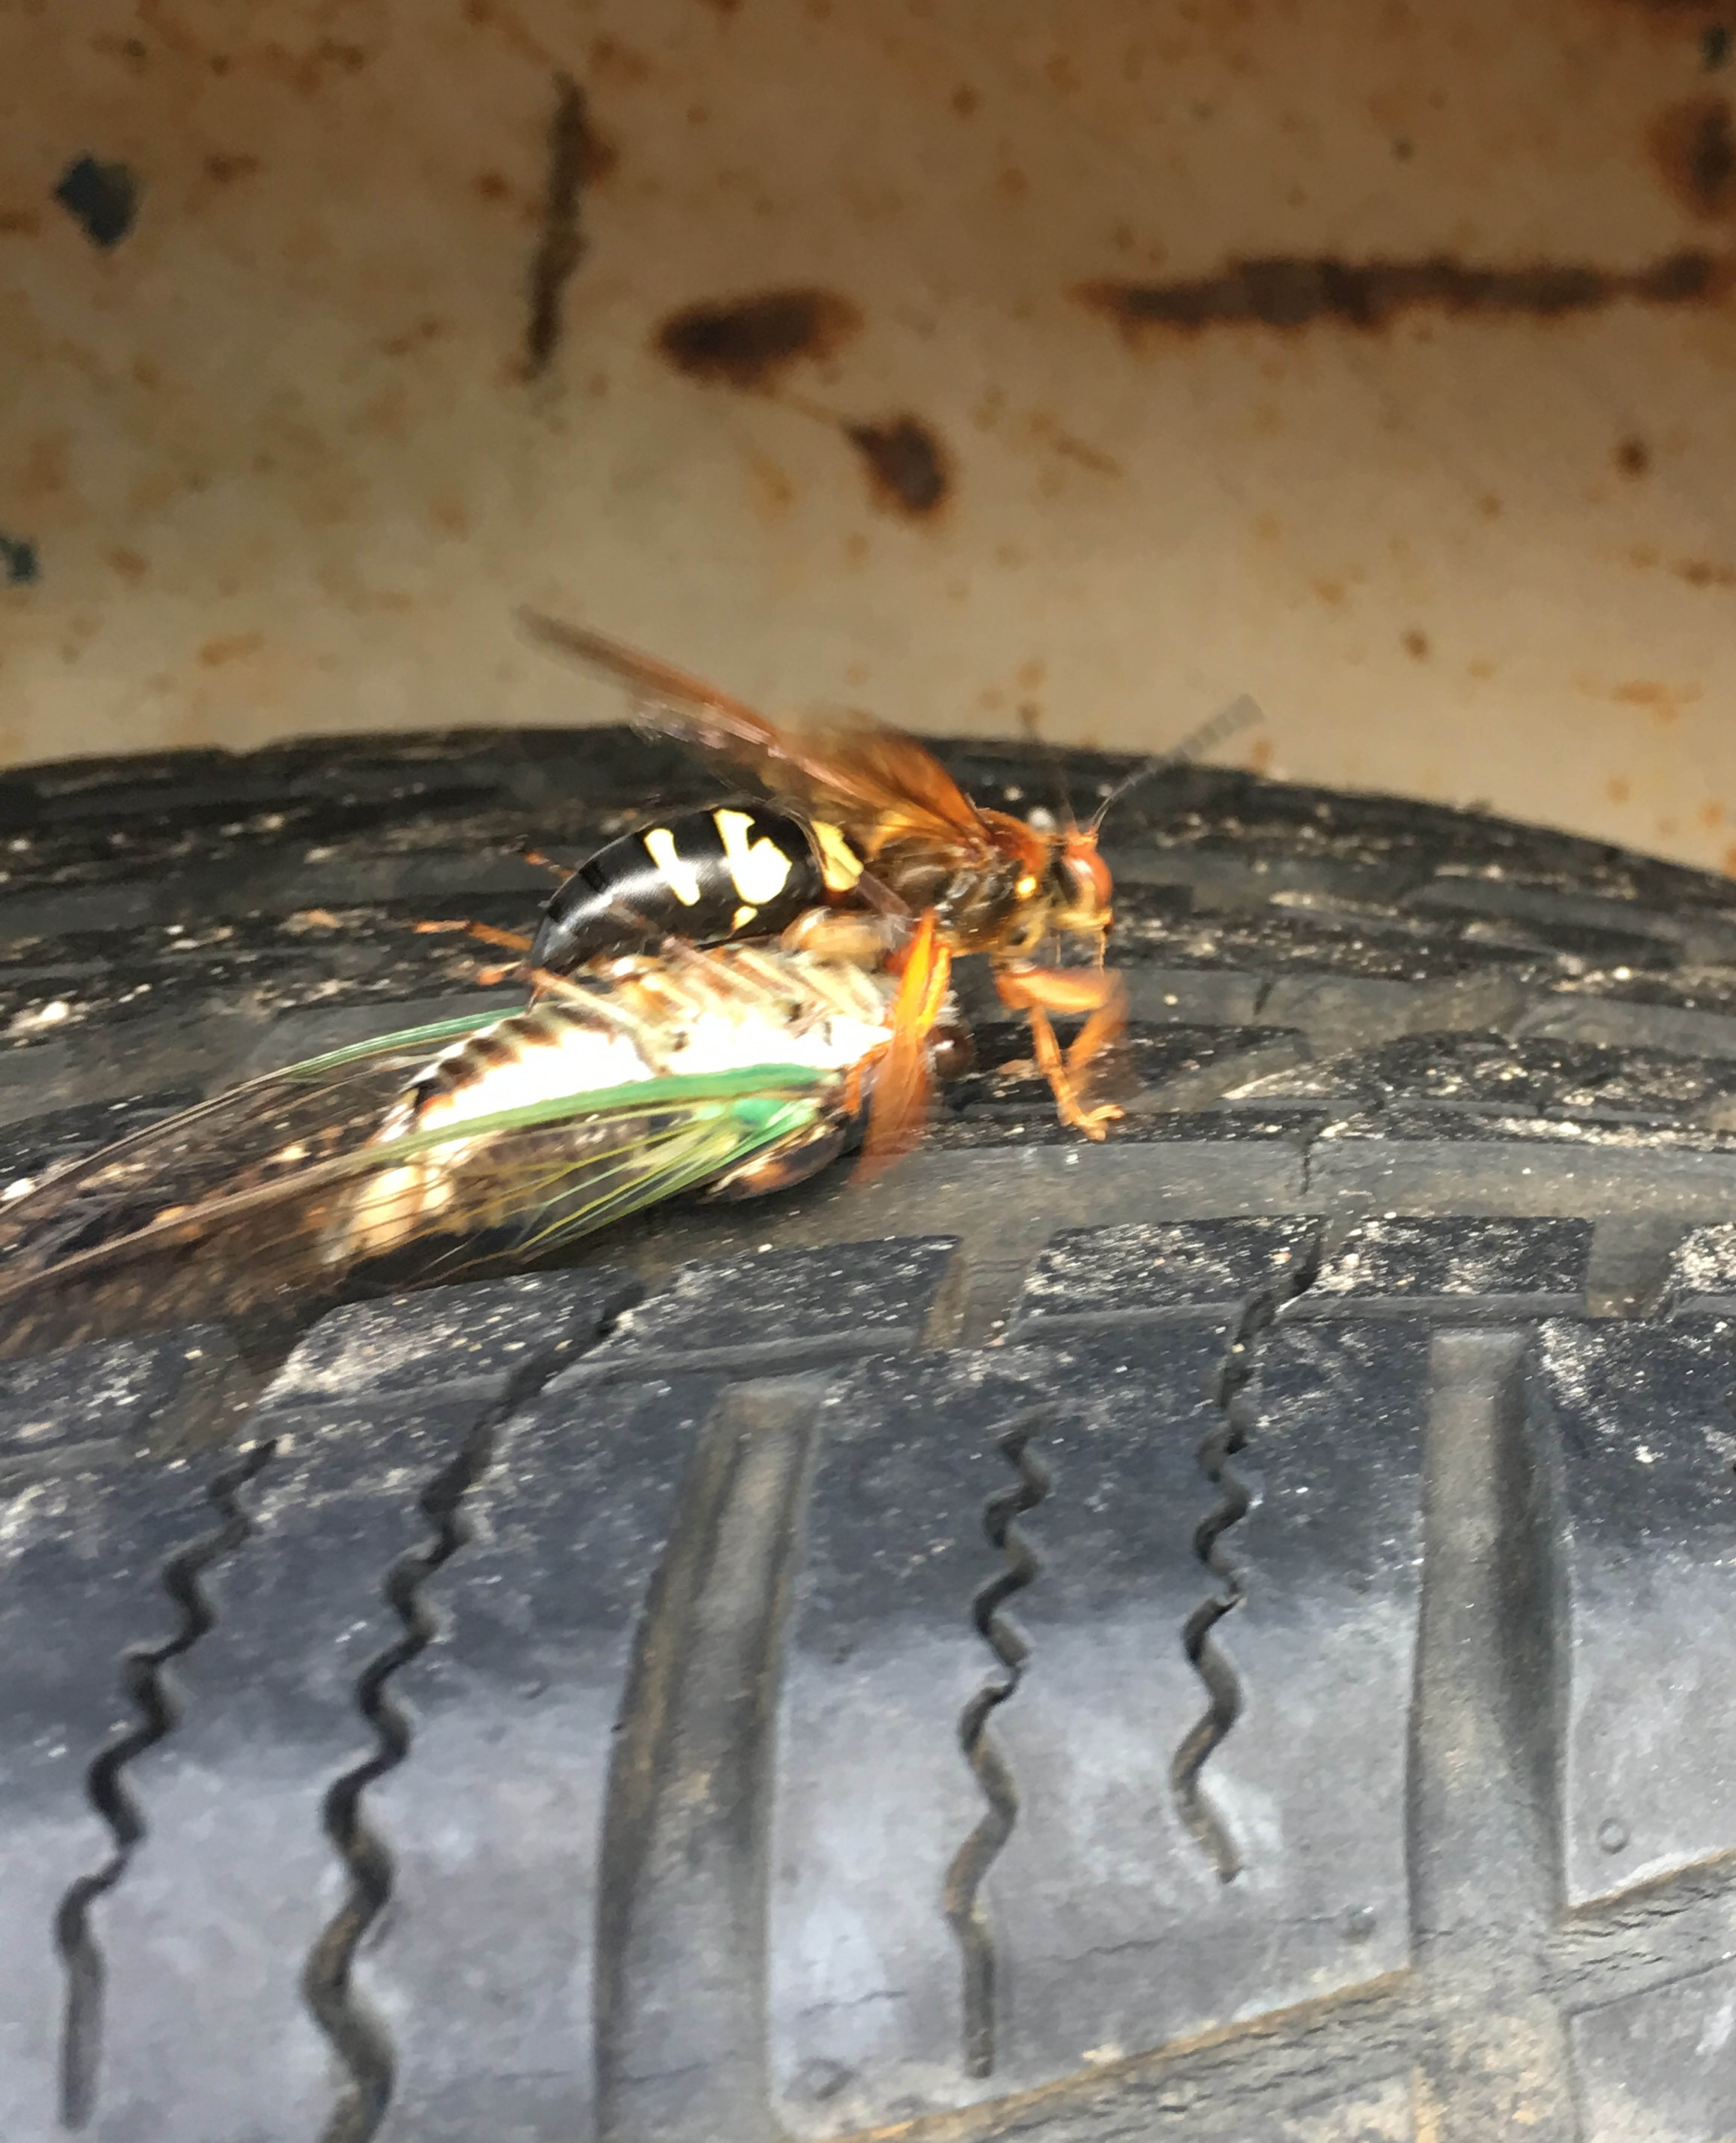 wasp classic pest control in azle, tx